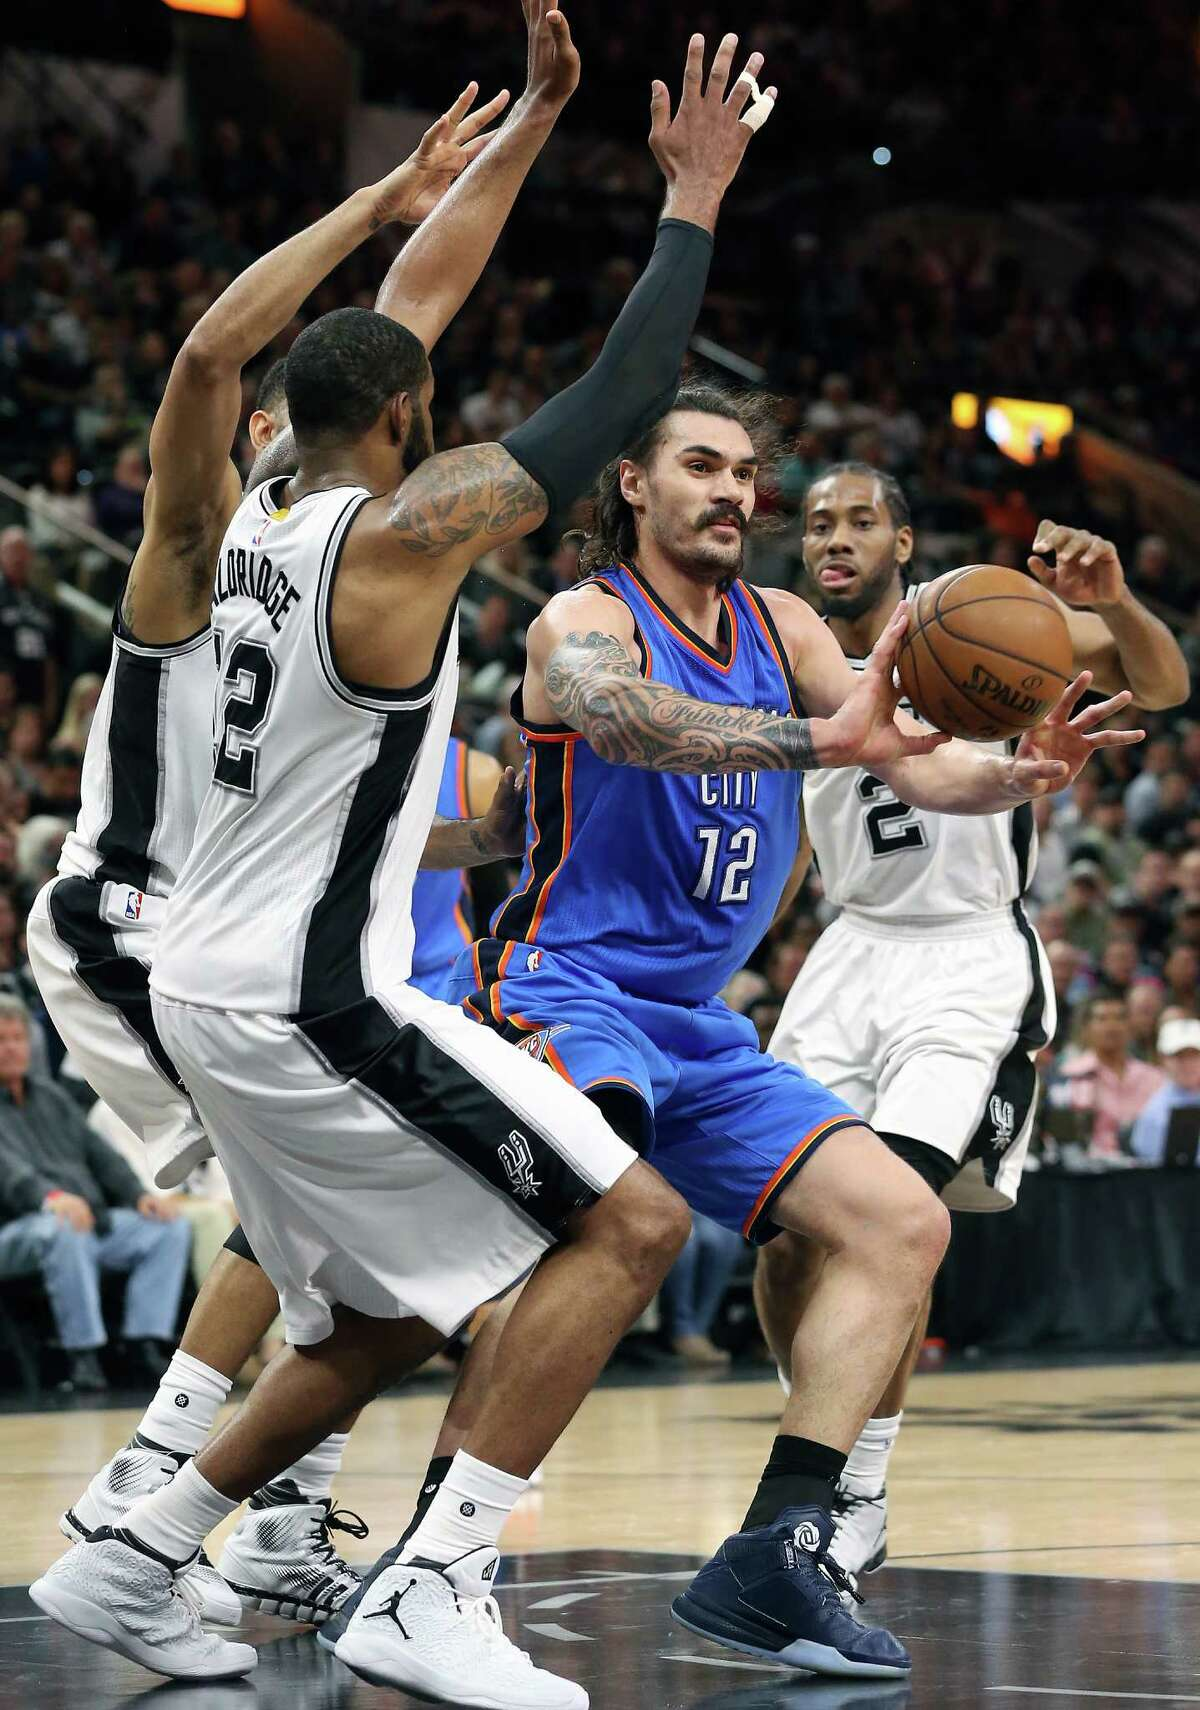 Steven Adams passes to the outside as the Spurs host the Thunder in game 2 of second round NBA playoff action at the AT&T Center on May 2, 2016.